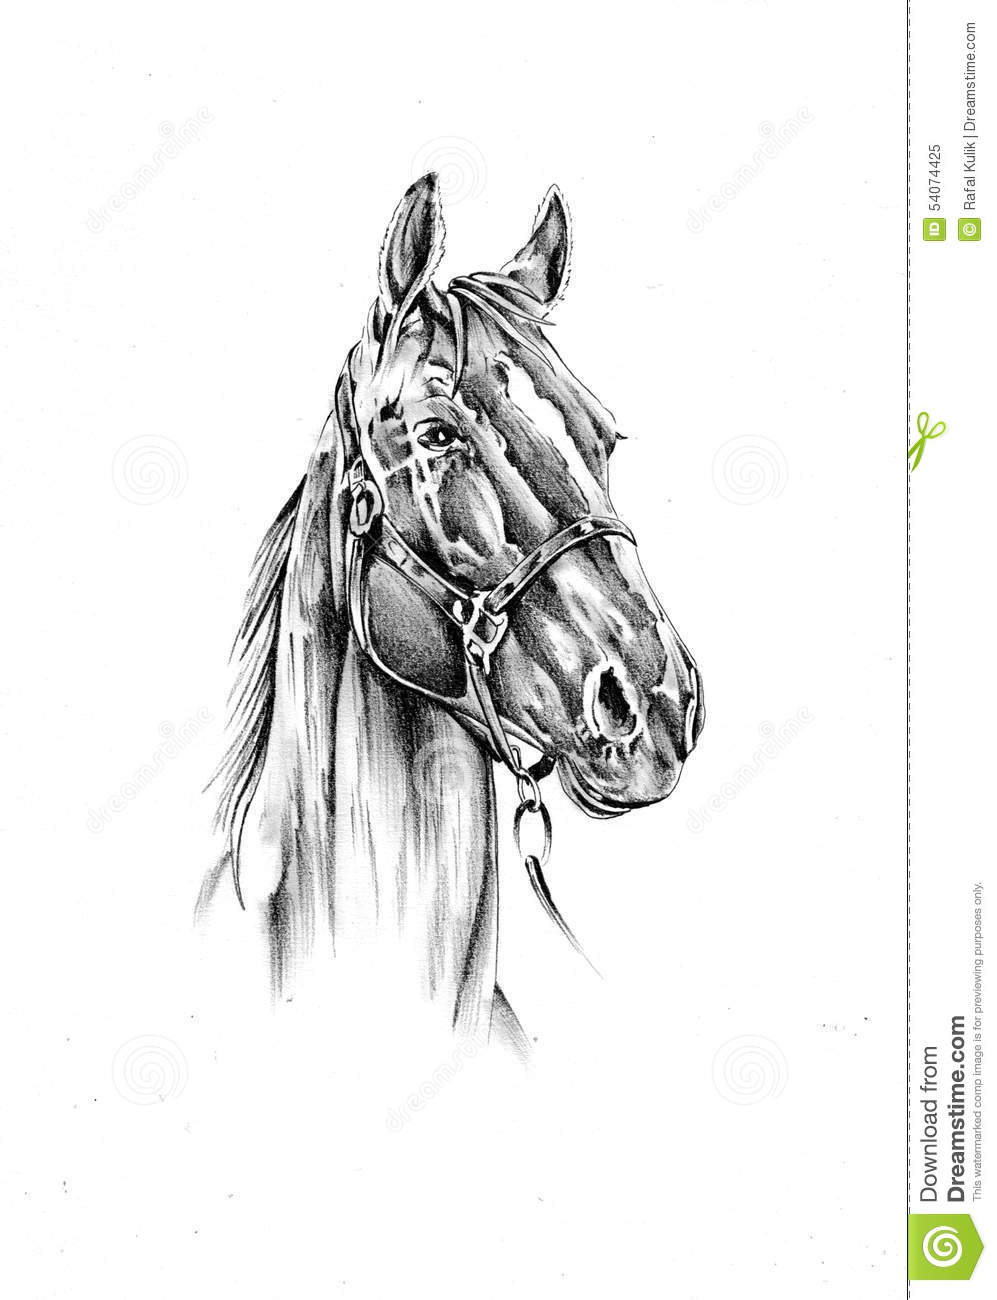 Horse Drawing Sketch Art Handmade Stock Illustration - Image: 54074425